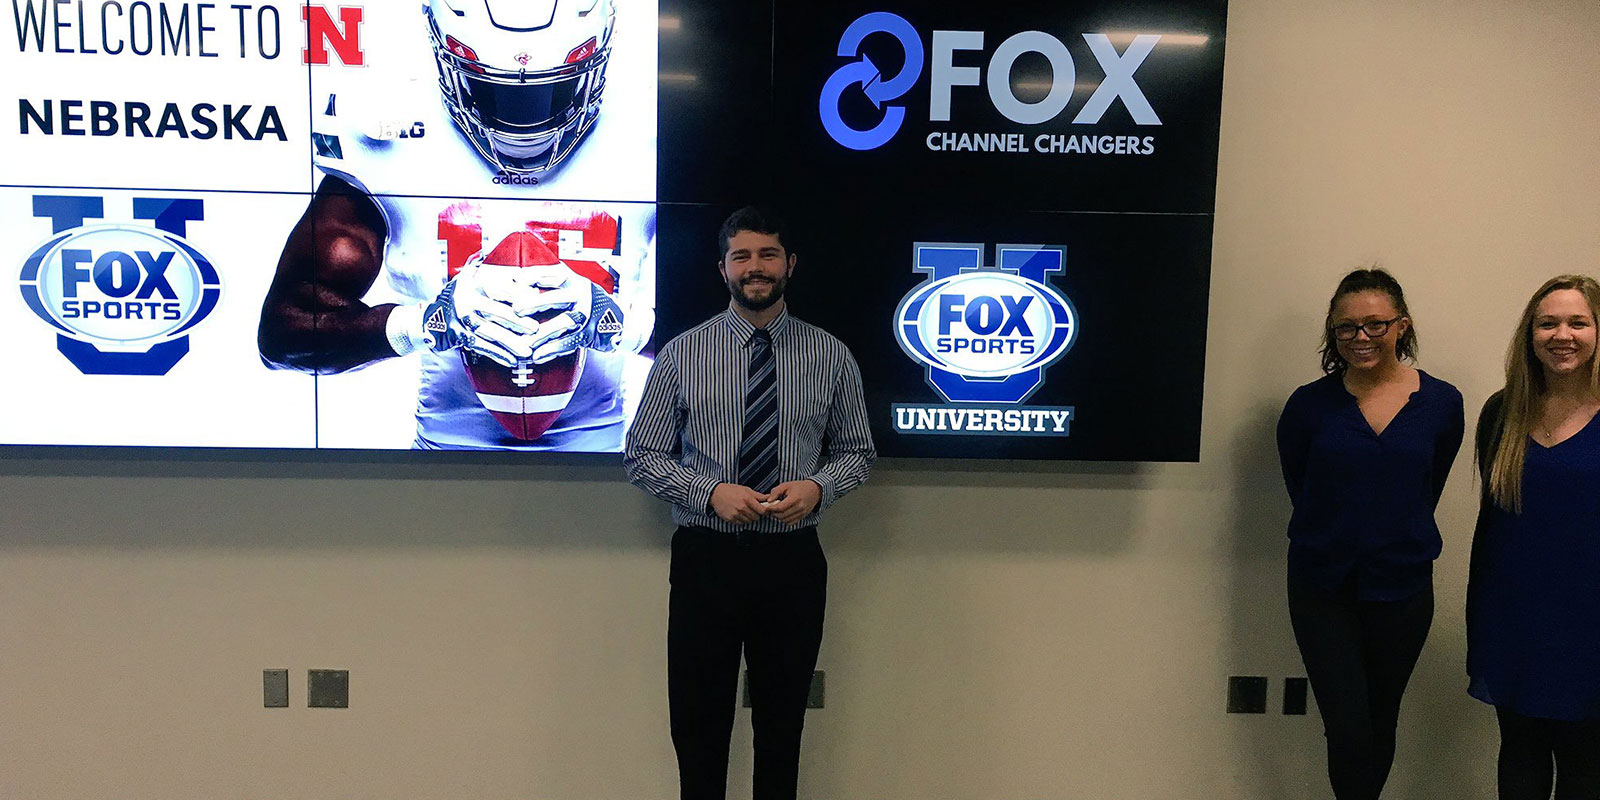 Fox Sports U students present their project